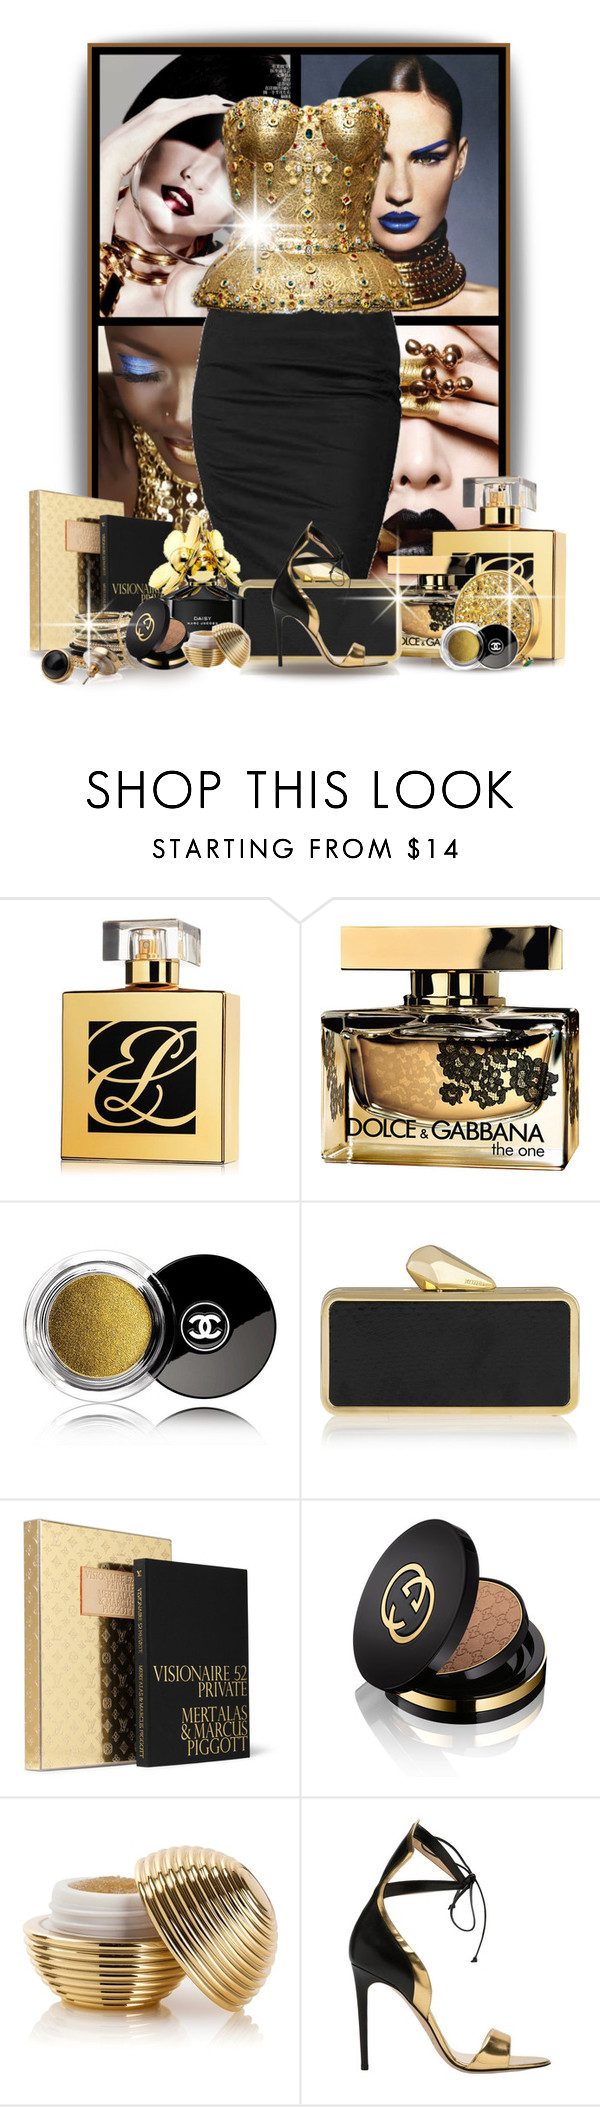 """""""Gold Rush"""" by jackie-eschbach ❤ liked on Polyvore featuring Rock & Republic, Dolce&Gabbana, Estée Lauder, Chanel, KOTUR, Louis Vuitton, Cara Accessories, ULTA, Gucci and Alejandro Ingelmo"""